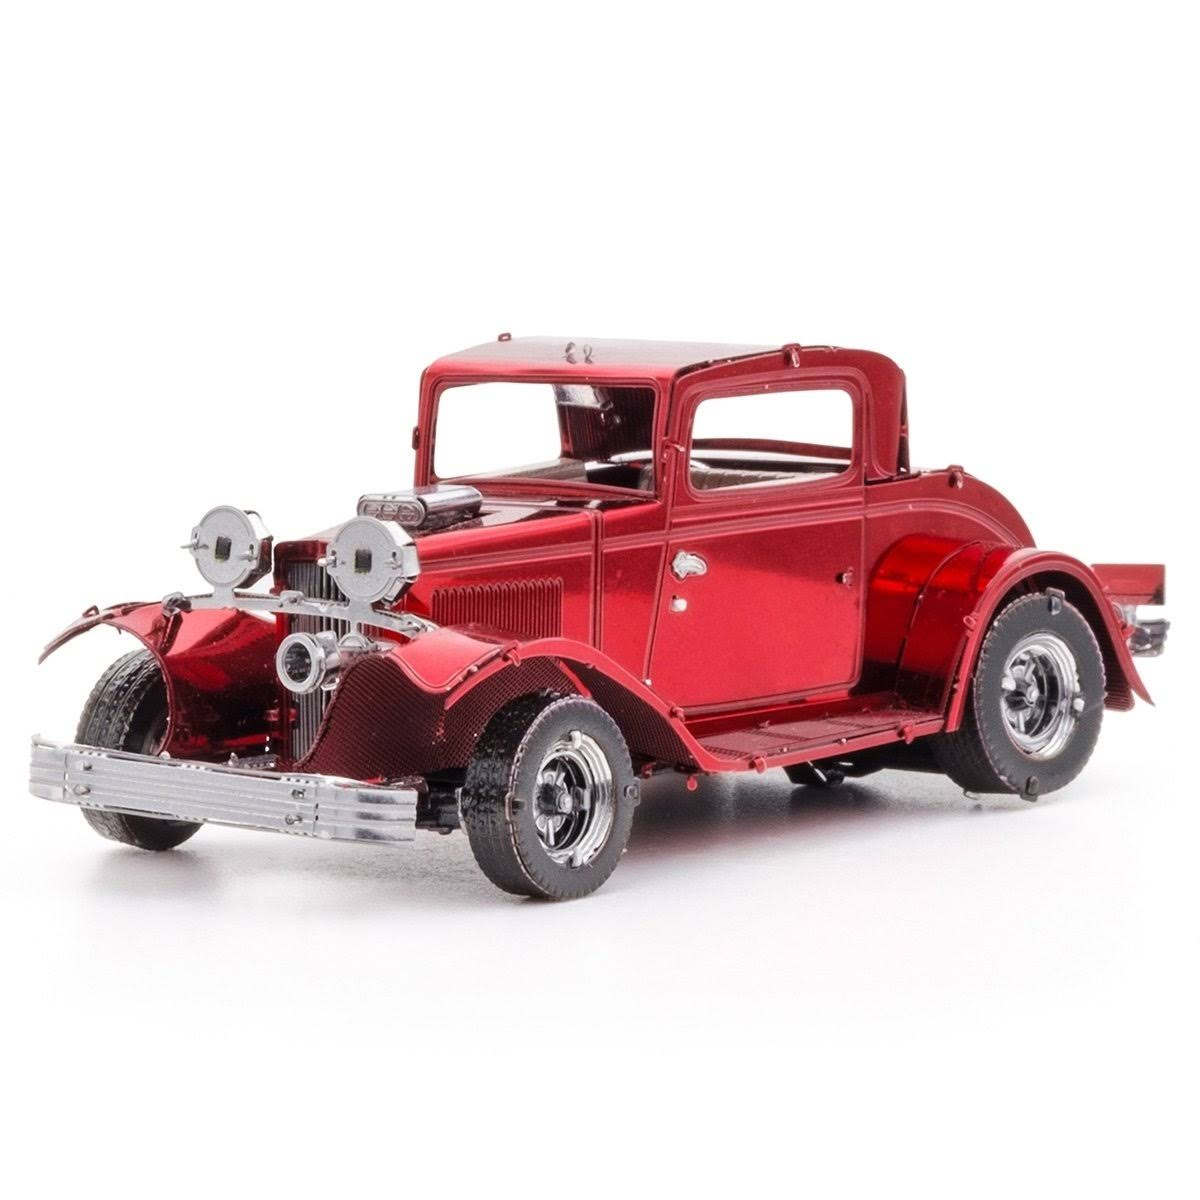 Metal Earth 1932 Ford Coupe 3D Model Kit